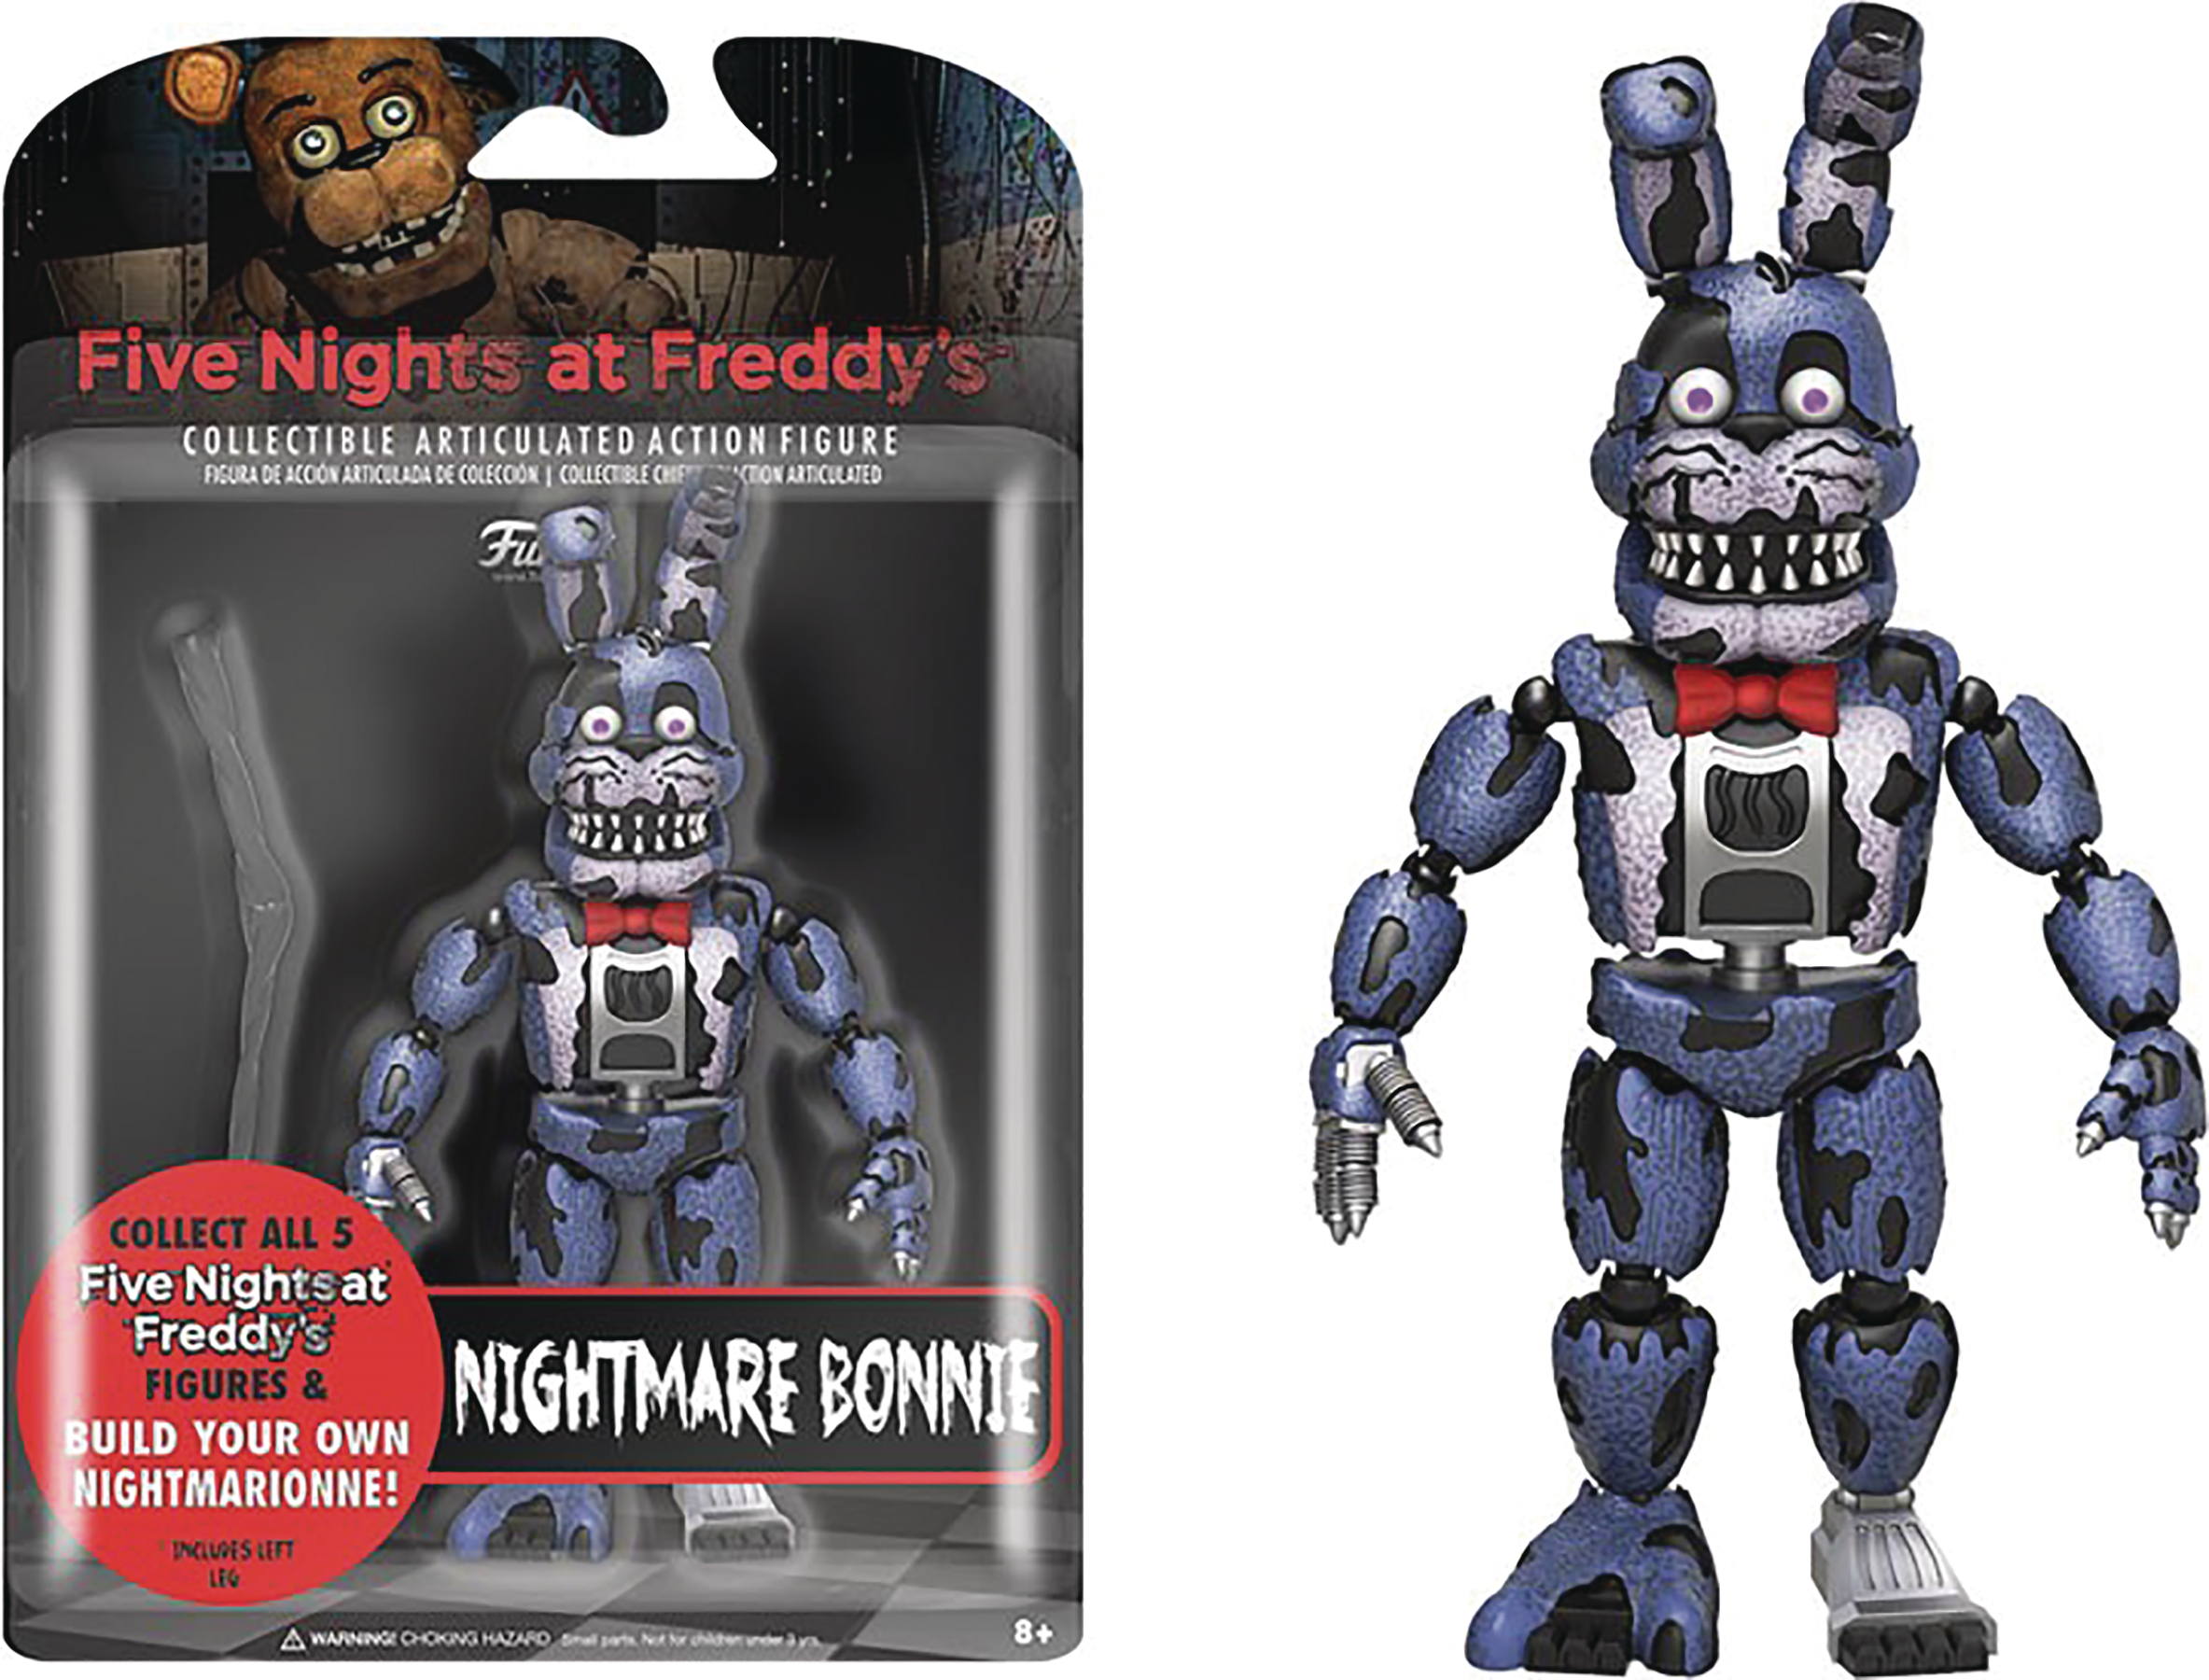 FIVE NIGHTS AT FREDDYS NIGHTMARE BONNIE 5IN ACTION FIGURE